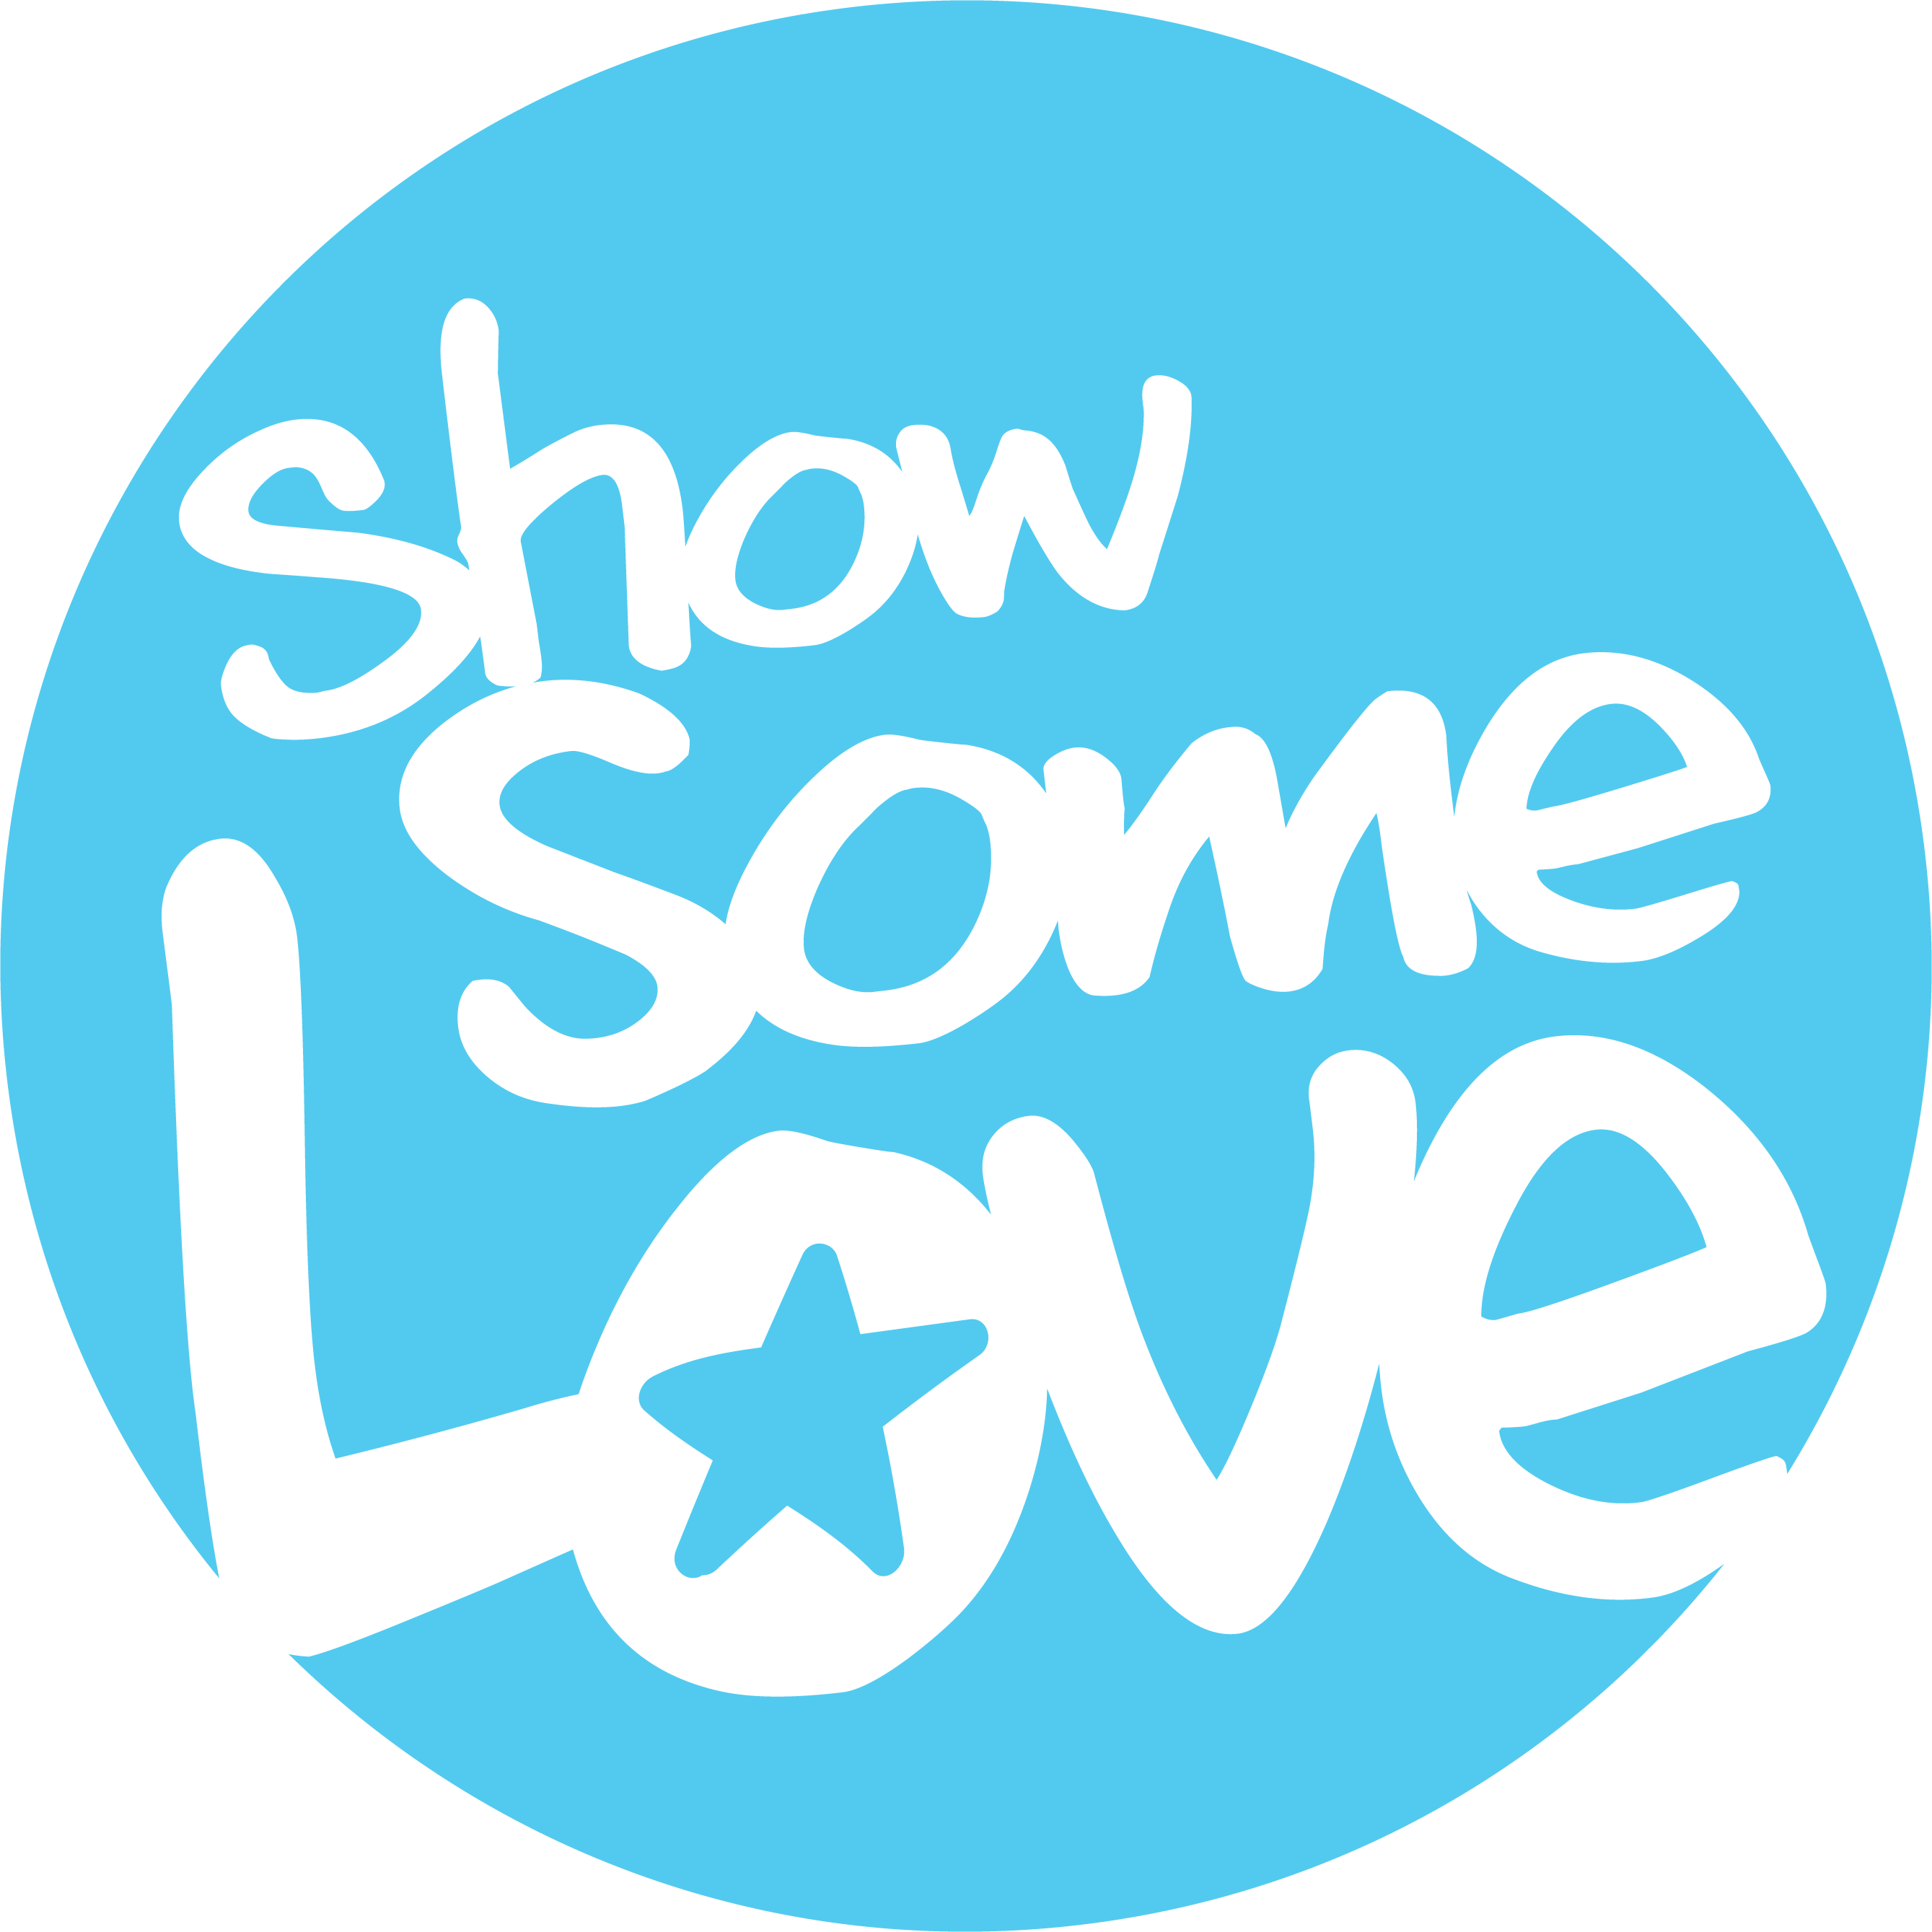 ShowSomeLove Blue